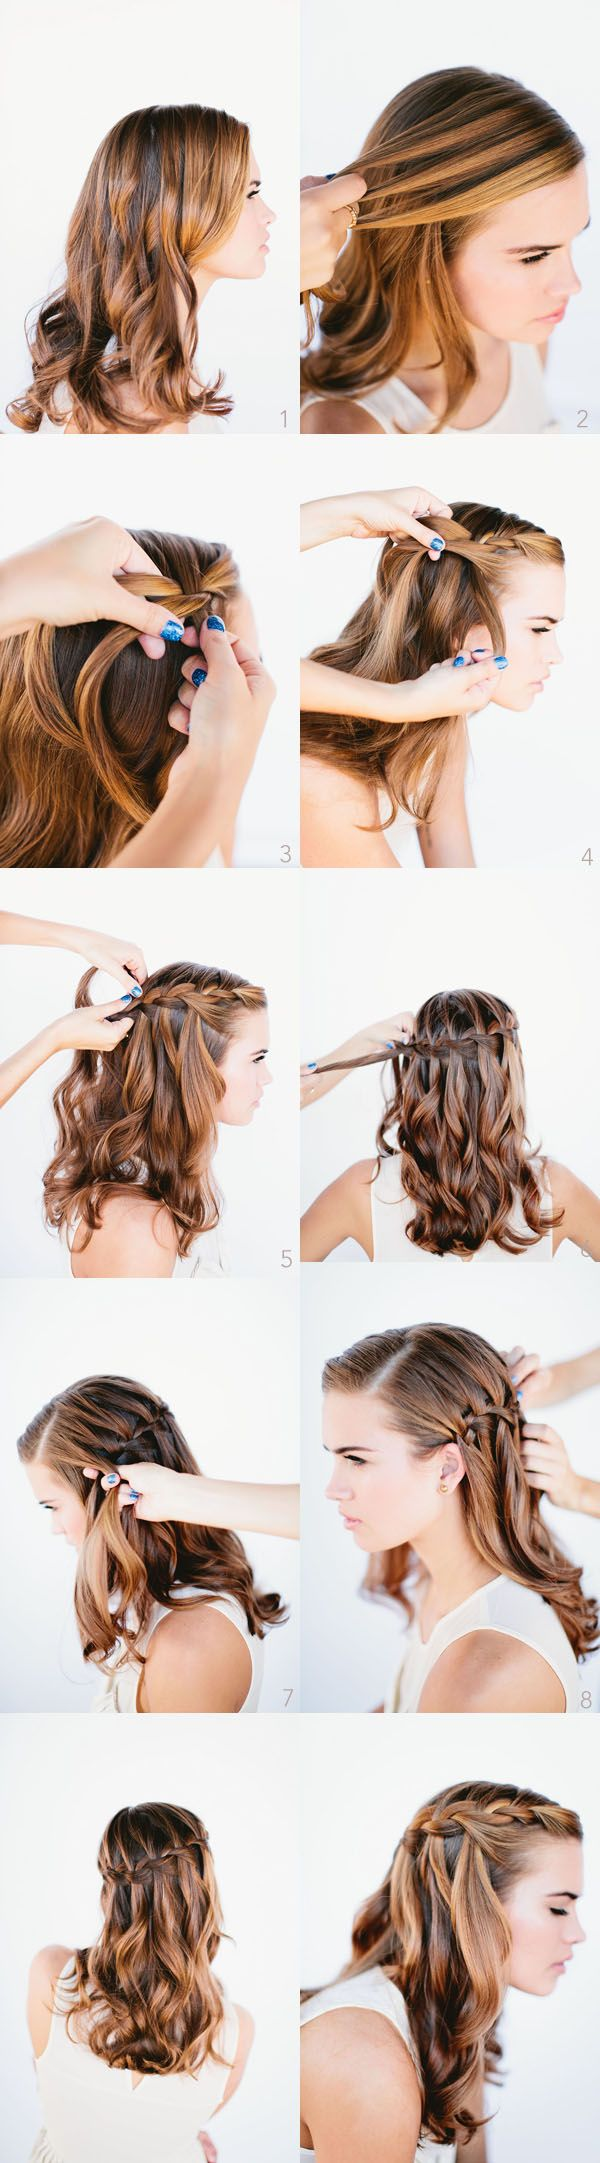 12 Romantic Braided Hairstyles With Useful Tutorials | Beach hair ...